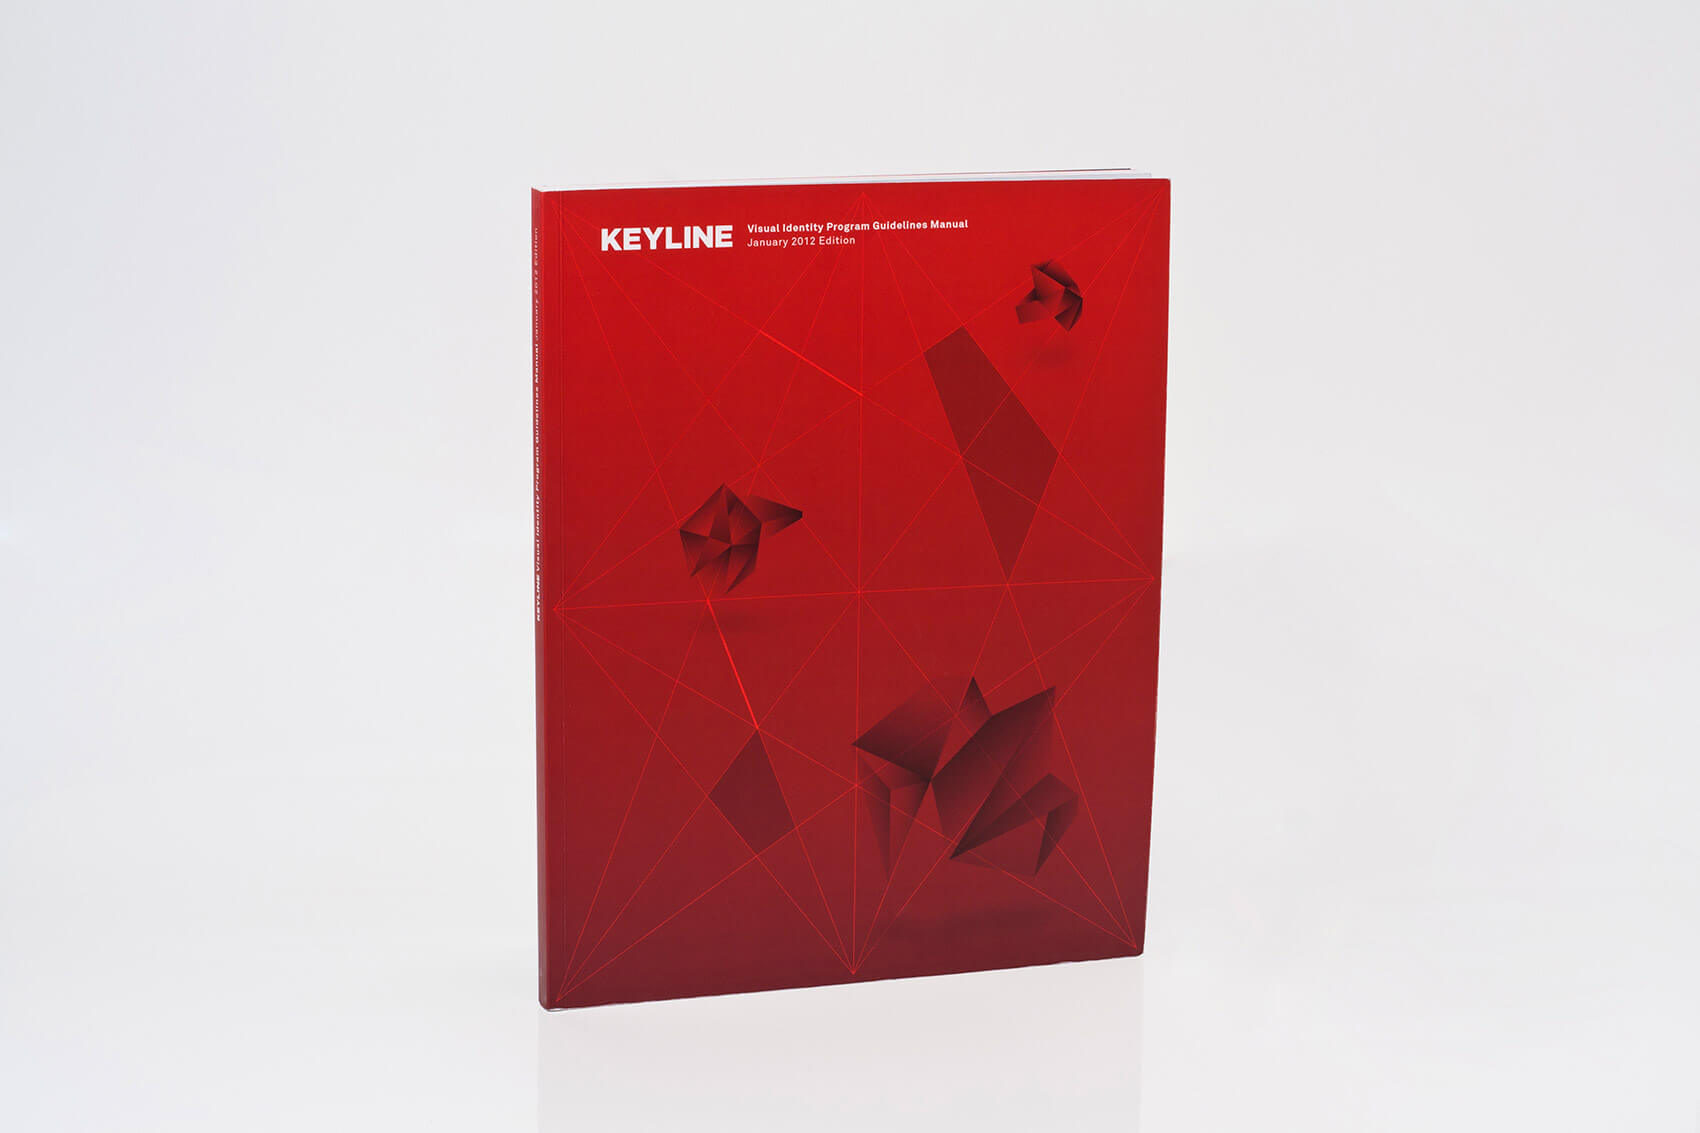 Keyline Corporate Guidelines Manual Cover